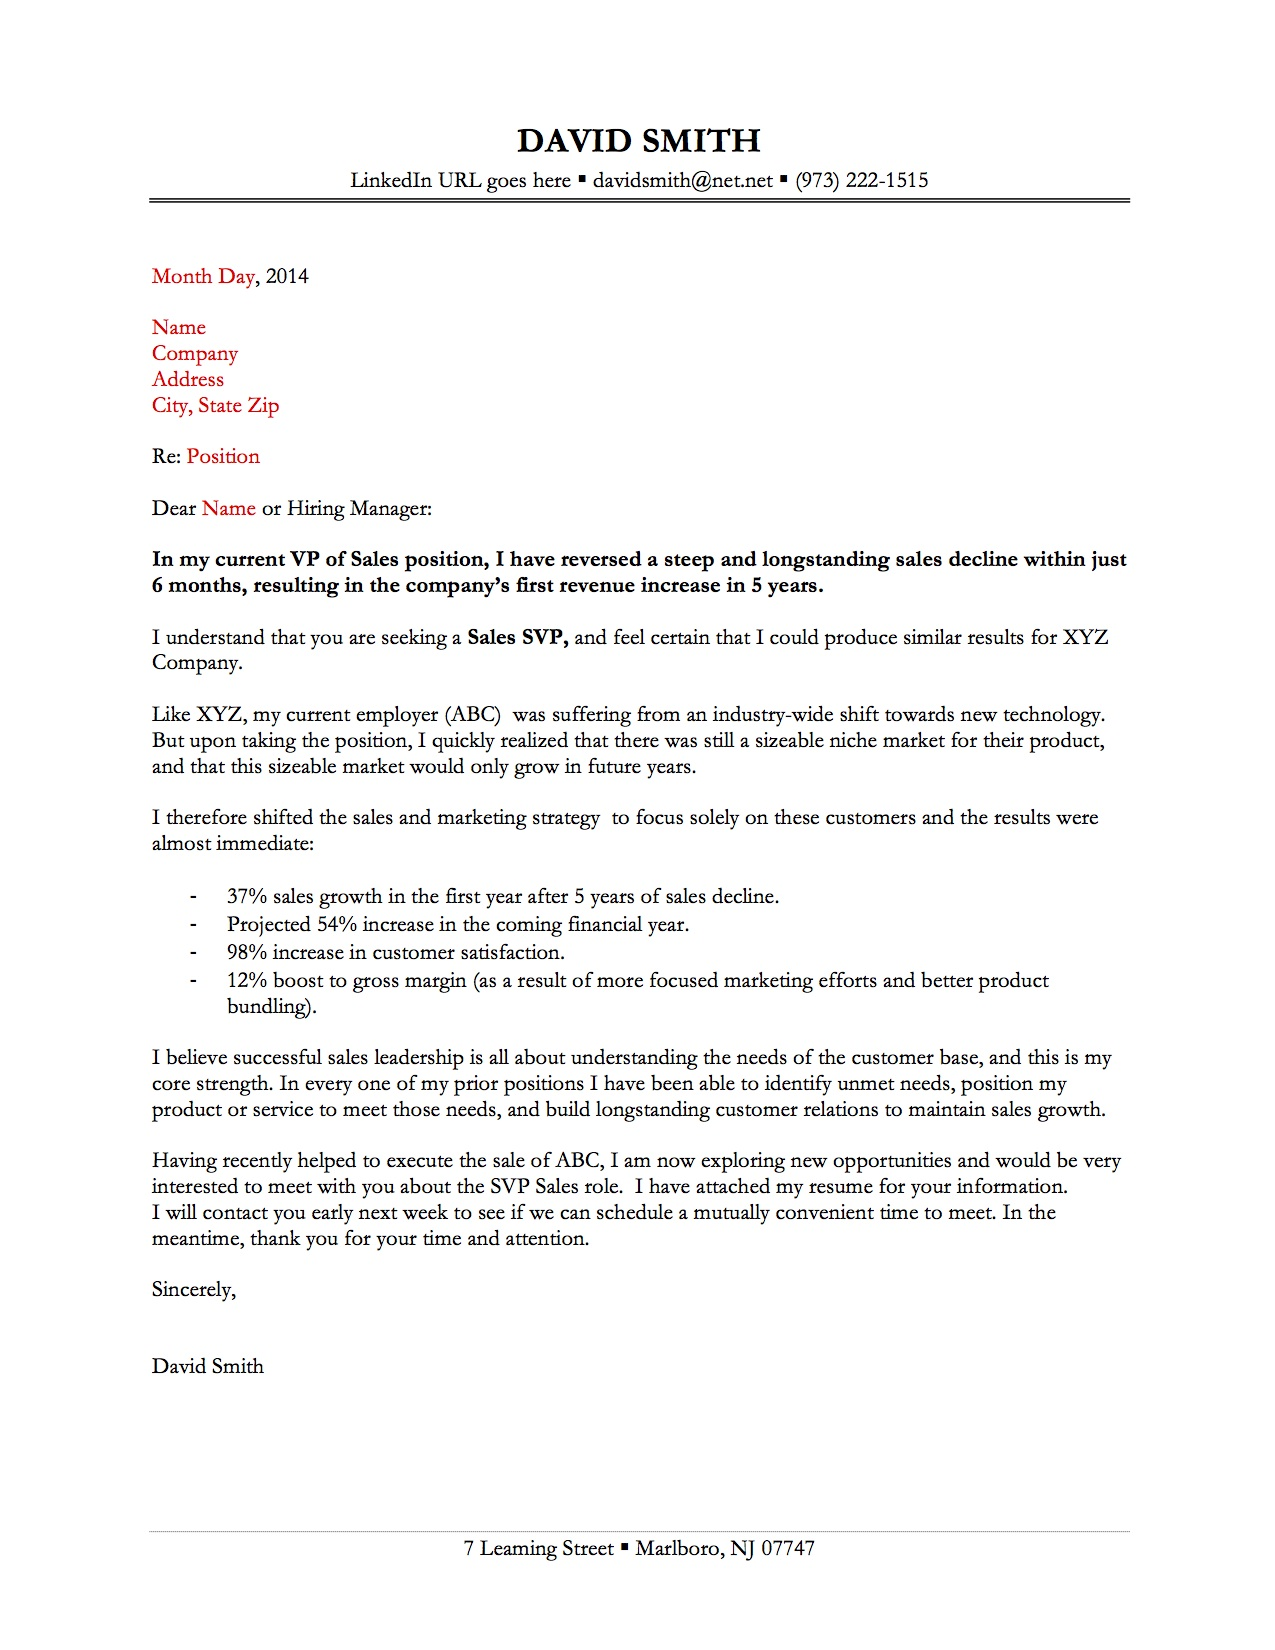 Sample Of Cover Letter Two Great Cover Letter Examples Blog Blue Sky Resumes